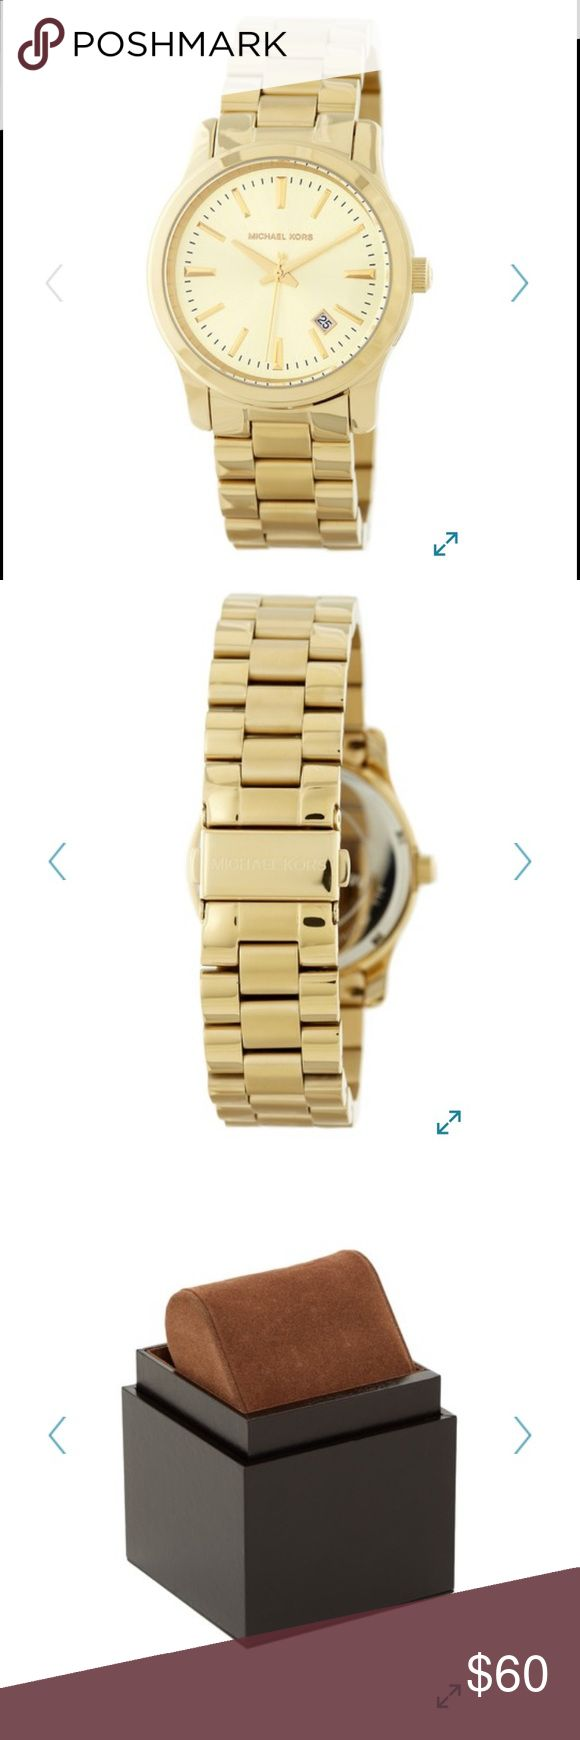 Michael Kors Jet Set Gold Watch Pre-loved with signs of wear, but still has a lot of life left! Battery will need to be replaced. MSRP is $225. Its currently on Nordstrom Rack for $100.  - Case: Gold-tone stainless steel case - Strap: Gold-tone stainless steel - Bezel: Fixed gold-tone - Dial: Champagne dial with gold-tone hands and stick hour markers  - Movement: Quartz - Case diameter: 38mm  - Case thickness: 12mm  - Bracelet Length: 7 inches - Closure: Foldover with push buttons - Water…